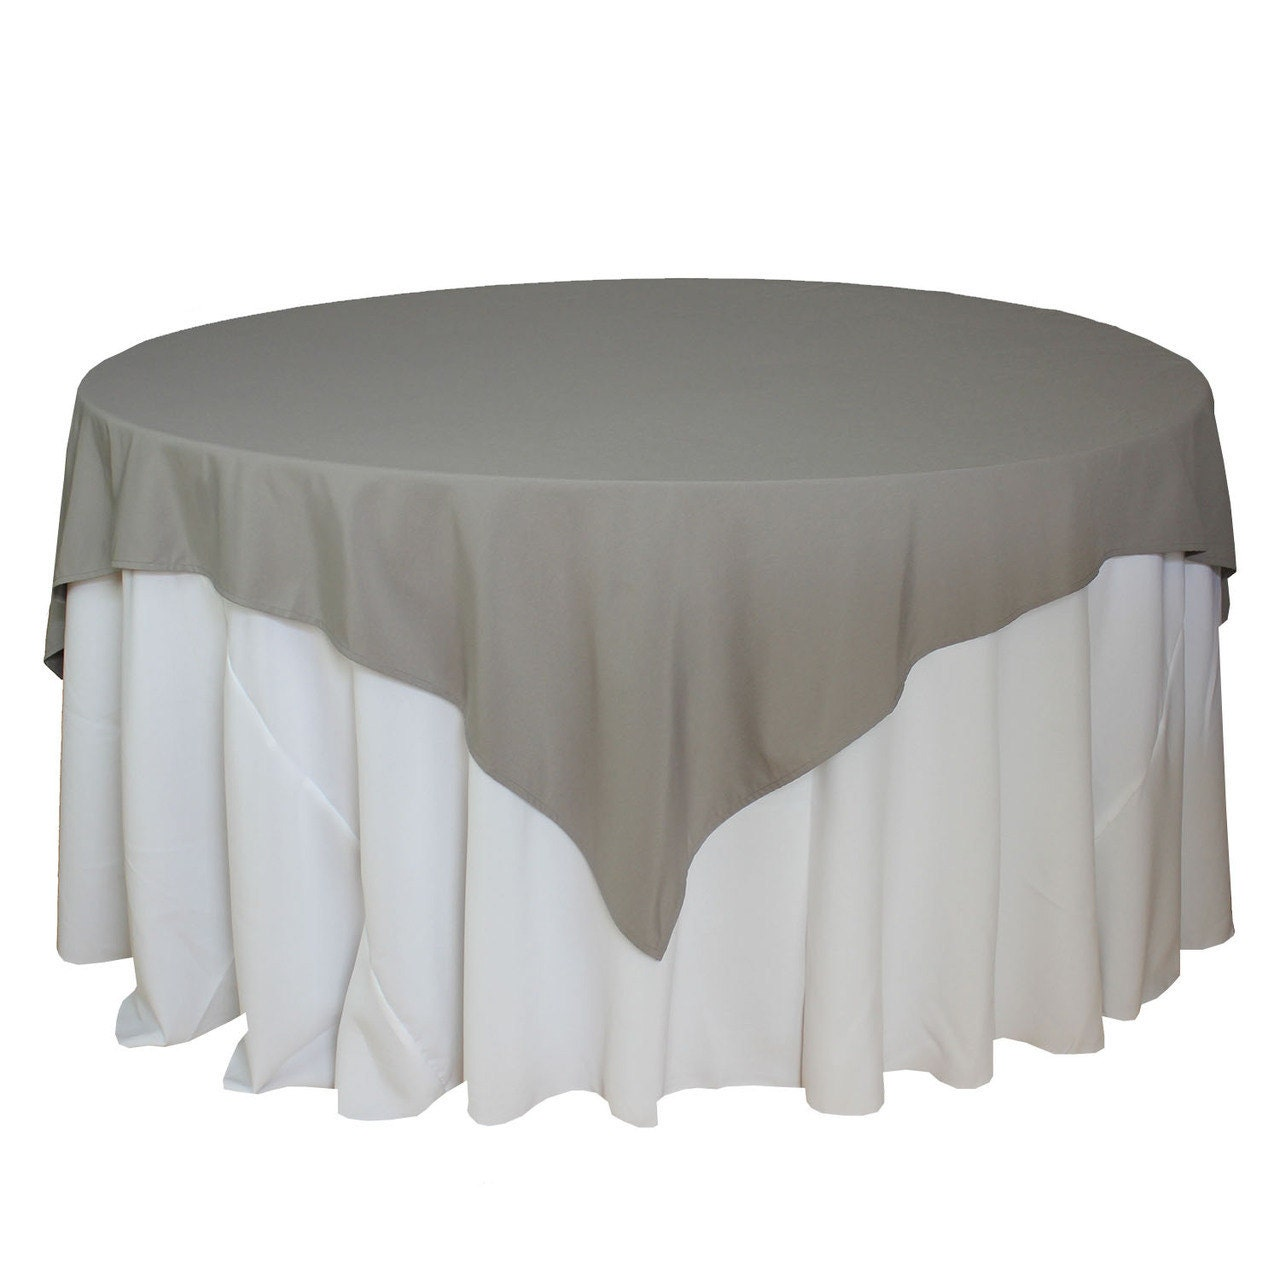 72 x 72 inches gray table overlays square gray tablecloths for Table linens